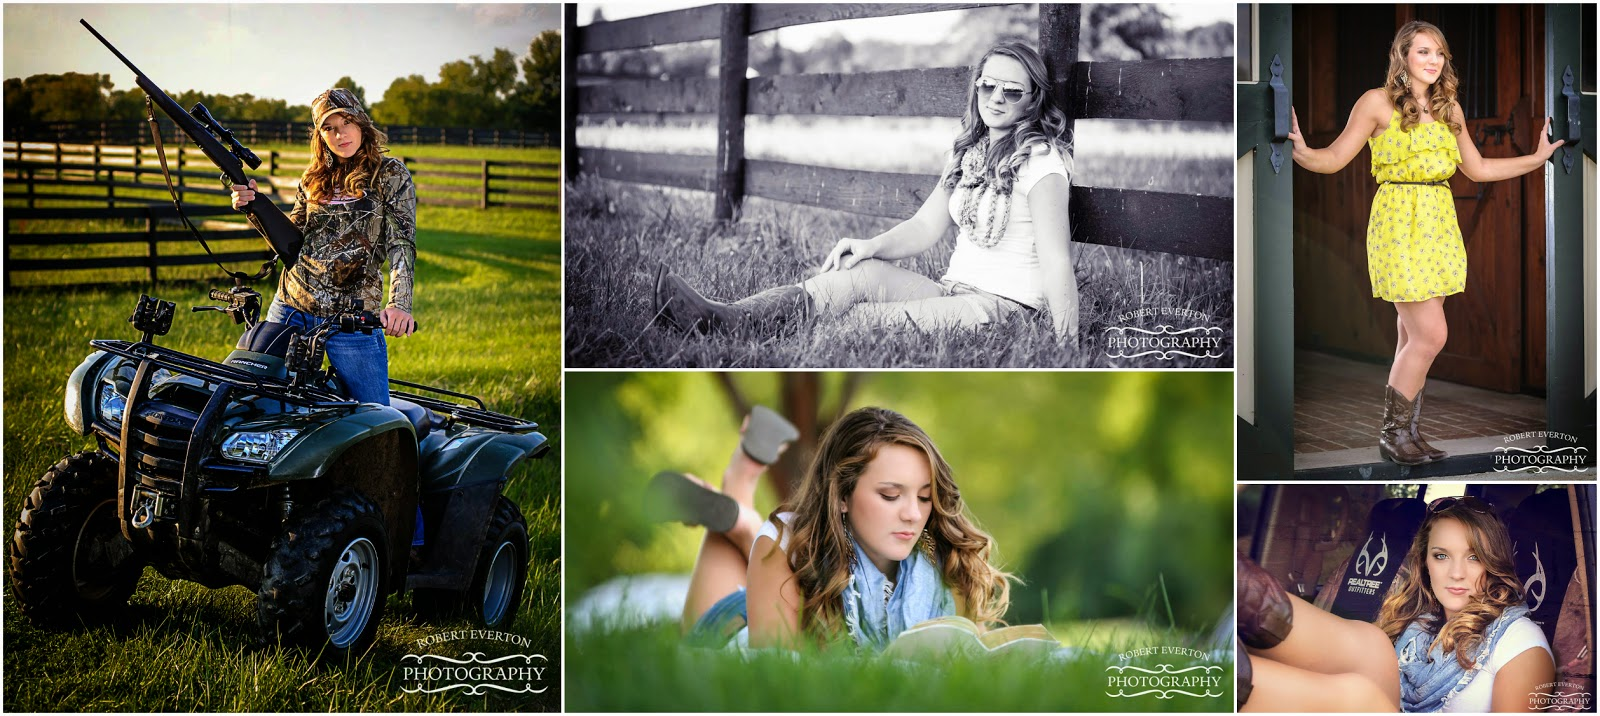 Our Senior Portraits Are Tailored To Fit Your High School Be Fun Creative And All About Who Is